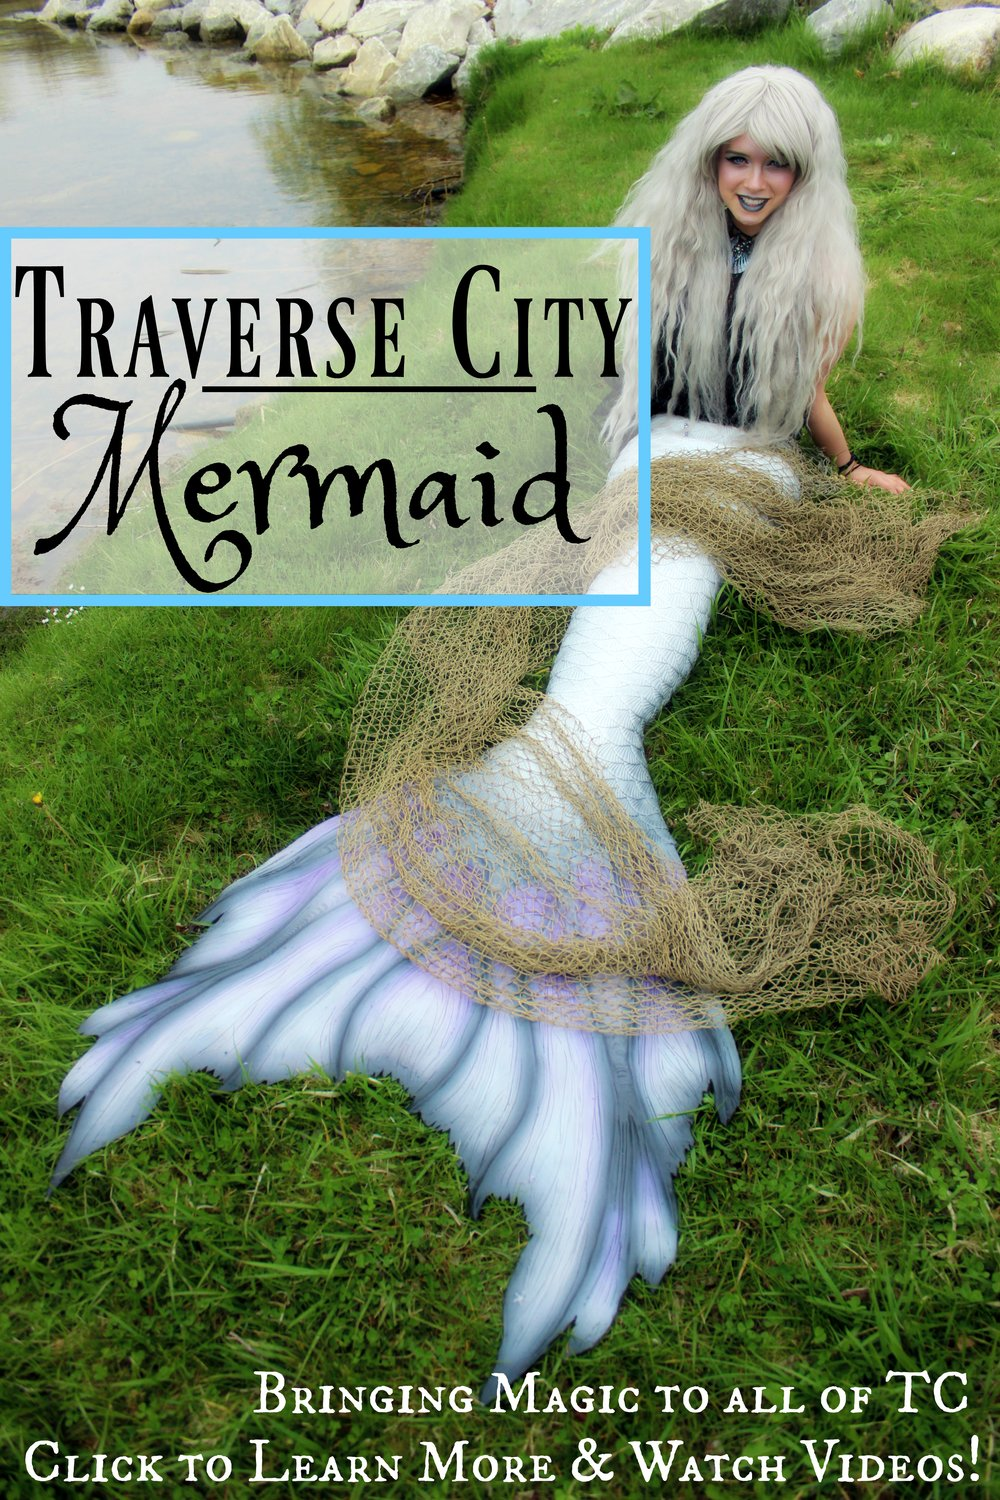 Mermaids in Traverse City, Michigan!?! Mermaid Phantom has proudly been serving Traverse City and Leelanau County as their first and only Professional Mermaid since 2016! She has working in tanks, in Lake Michigan, in swimming pools and on dry land for years as an entertainer. Whether you have a special mermaid birthday party planned for your child, or a high-end event planned for your company, Mermaid Phantom is guaranteed to bring smiles and mermaid magic to your big celebration. Making magical moments that turn into lasting memories is what she's all about! ♥  Email Phantom@TheMagicCrafter.com today to get started. ♥